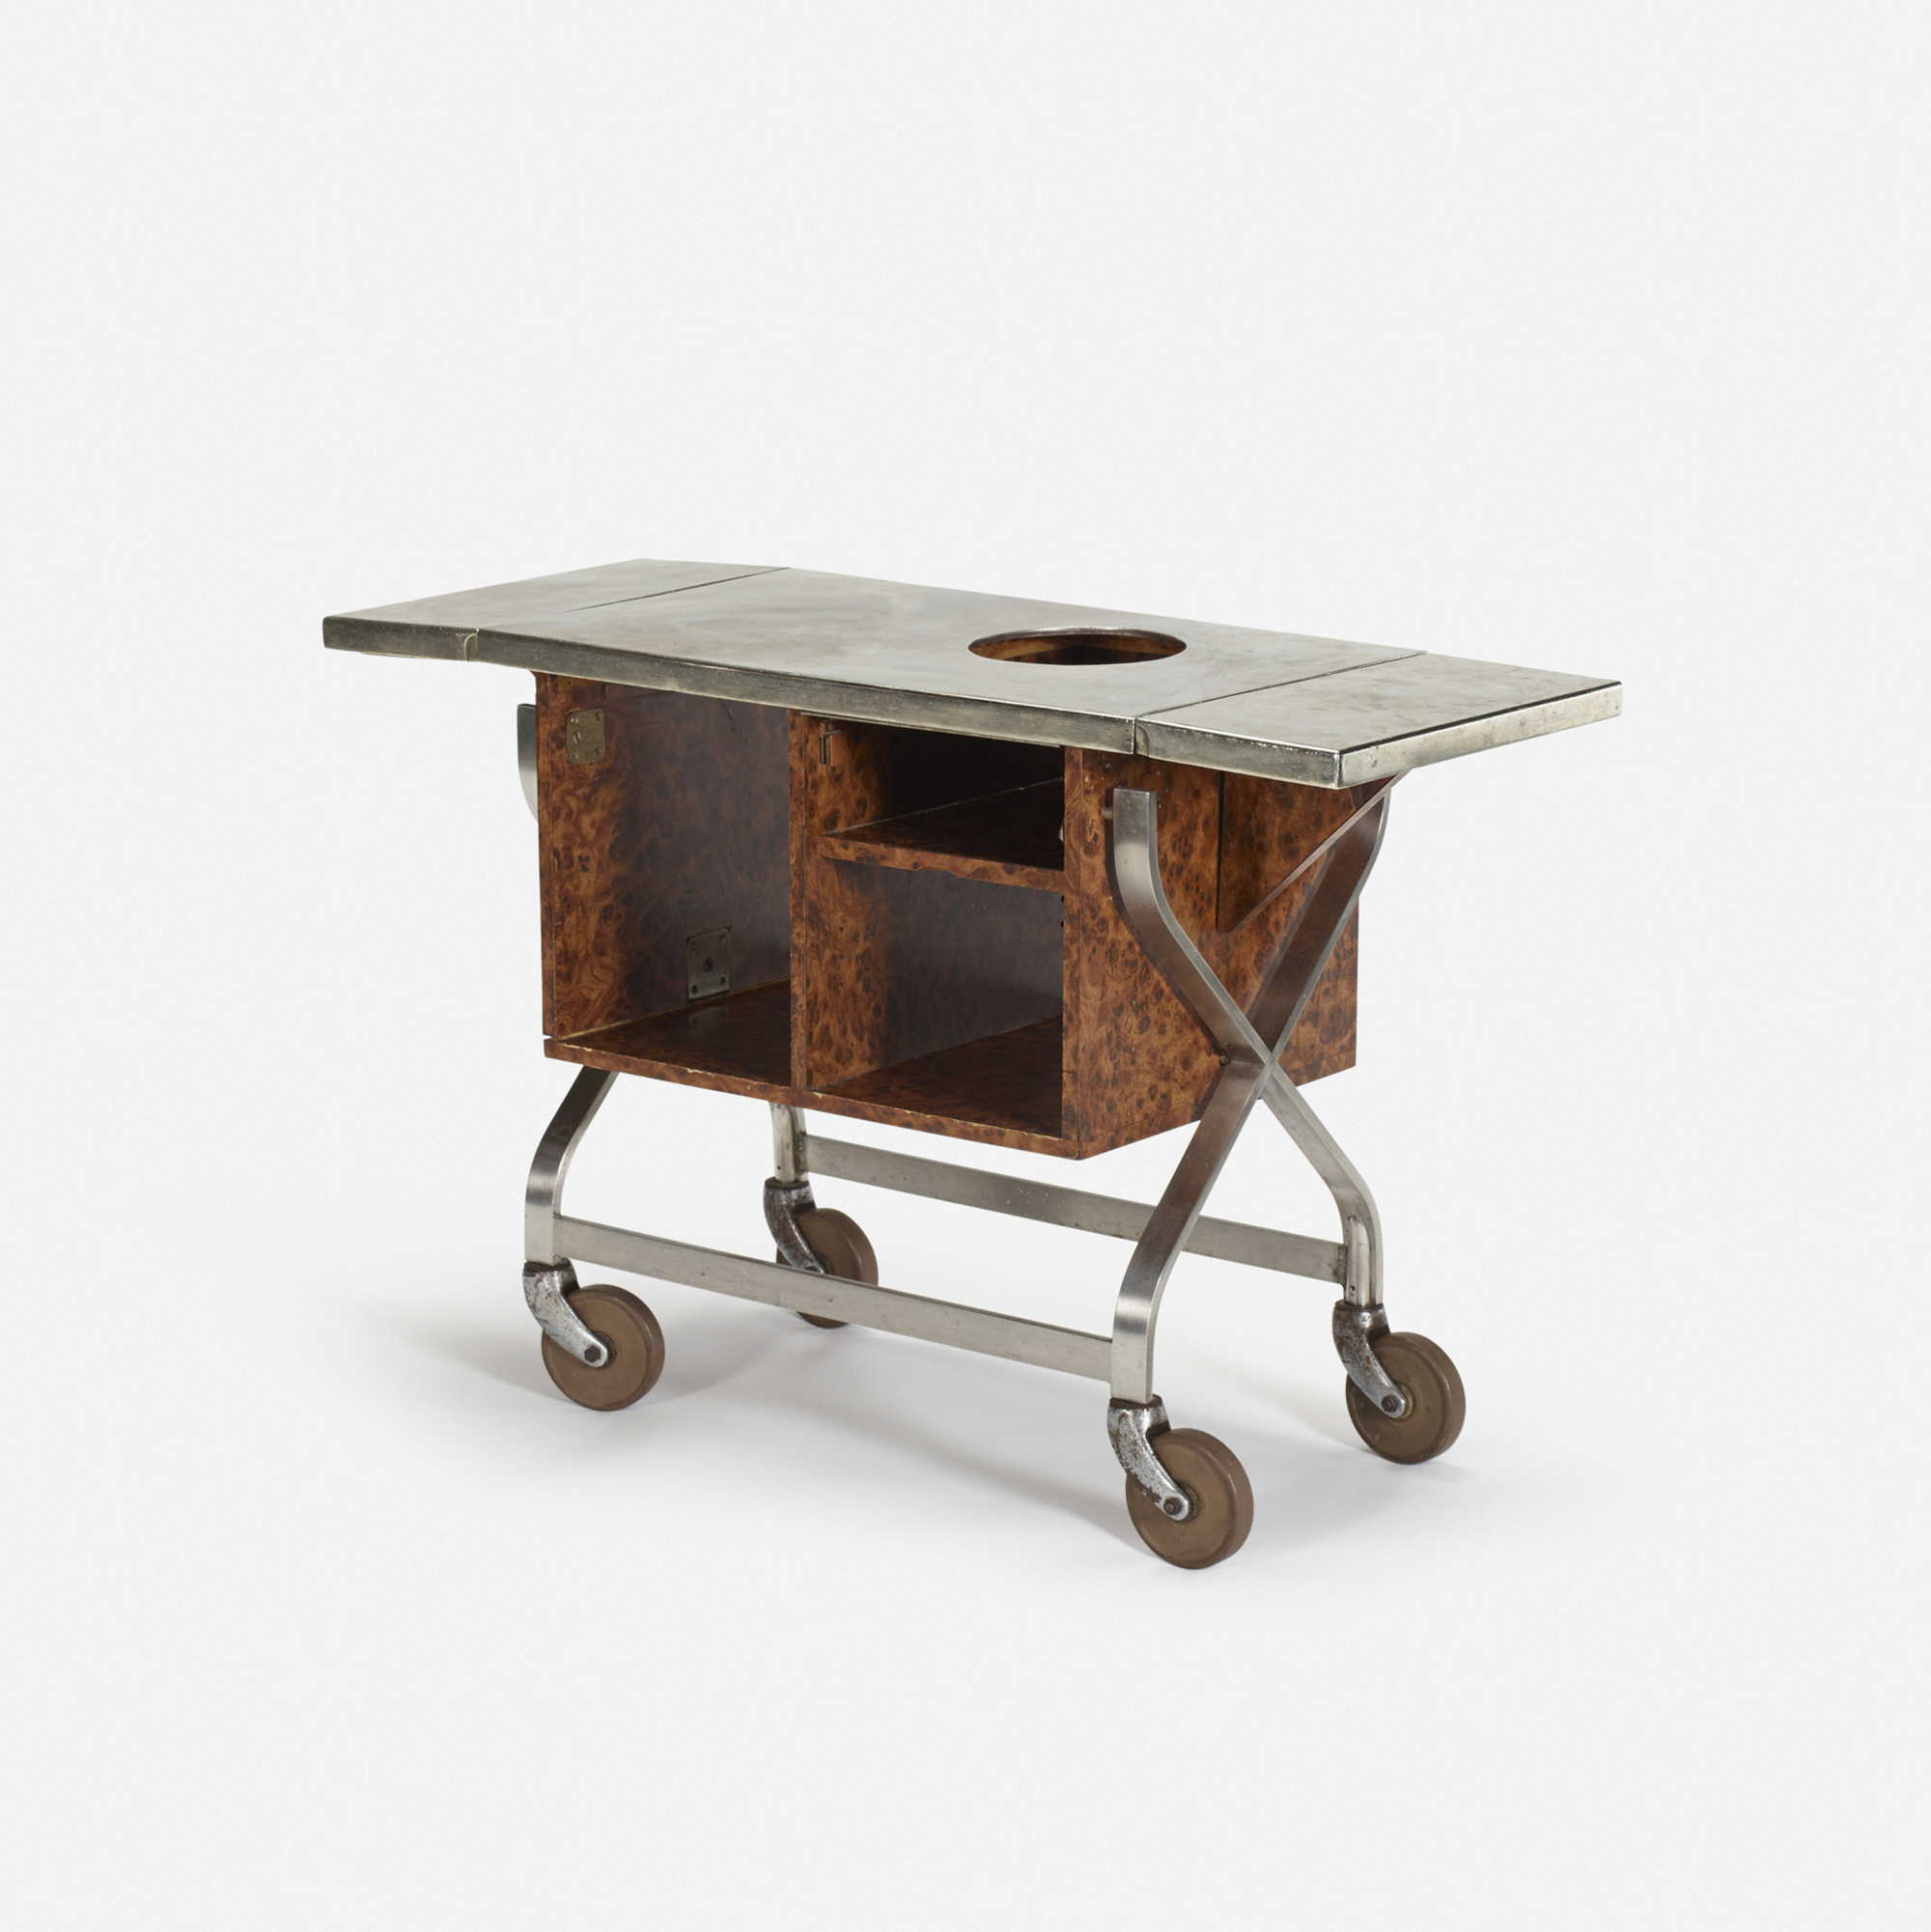 444: Garth and Ada Louise Huxtable / Serving cart from The Four Seasons (1 of 1)